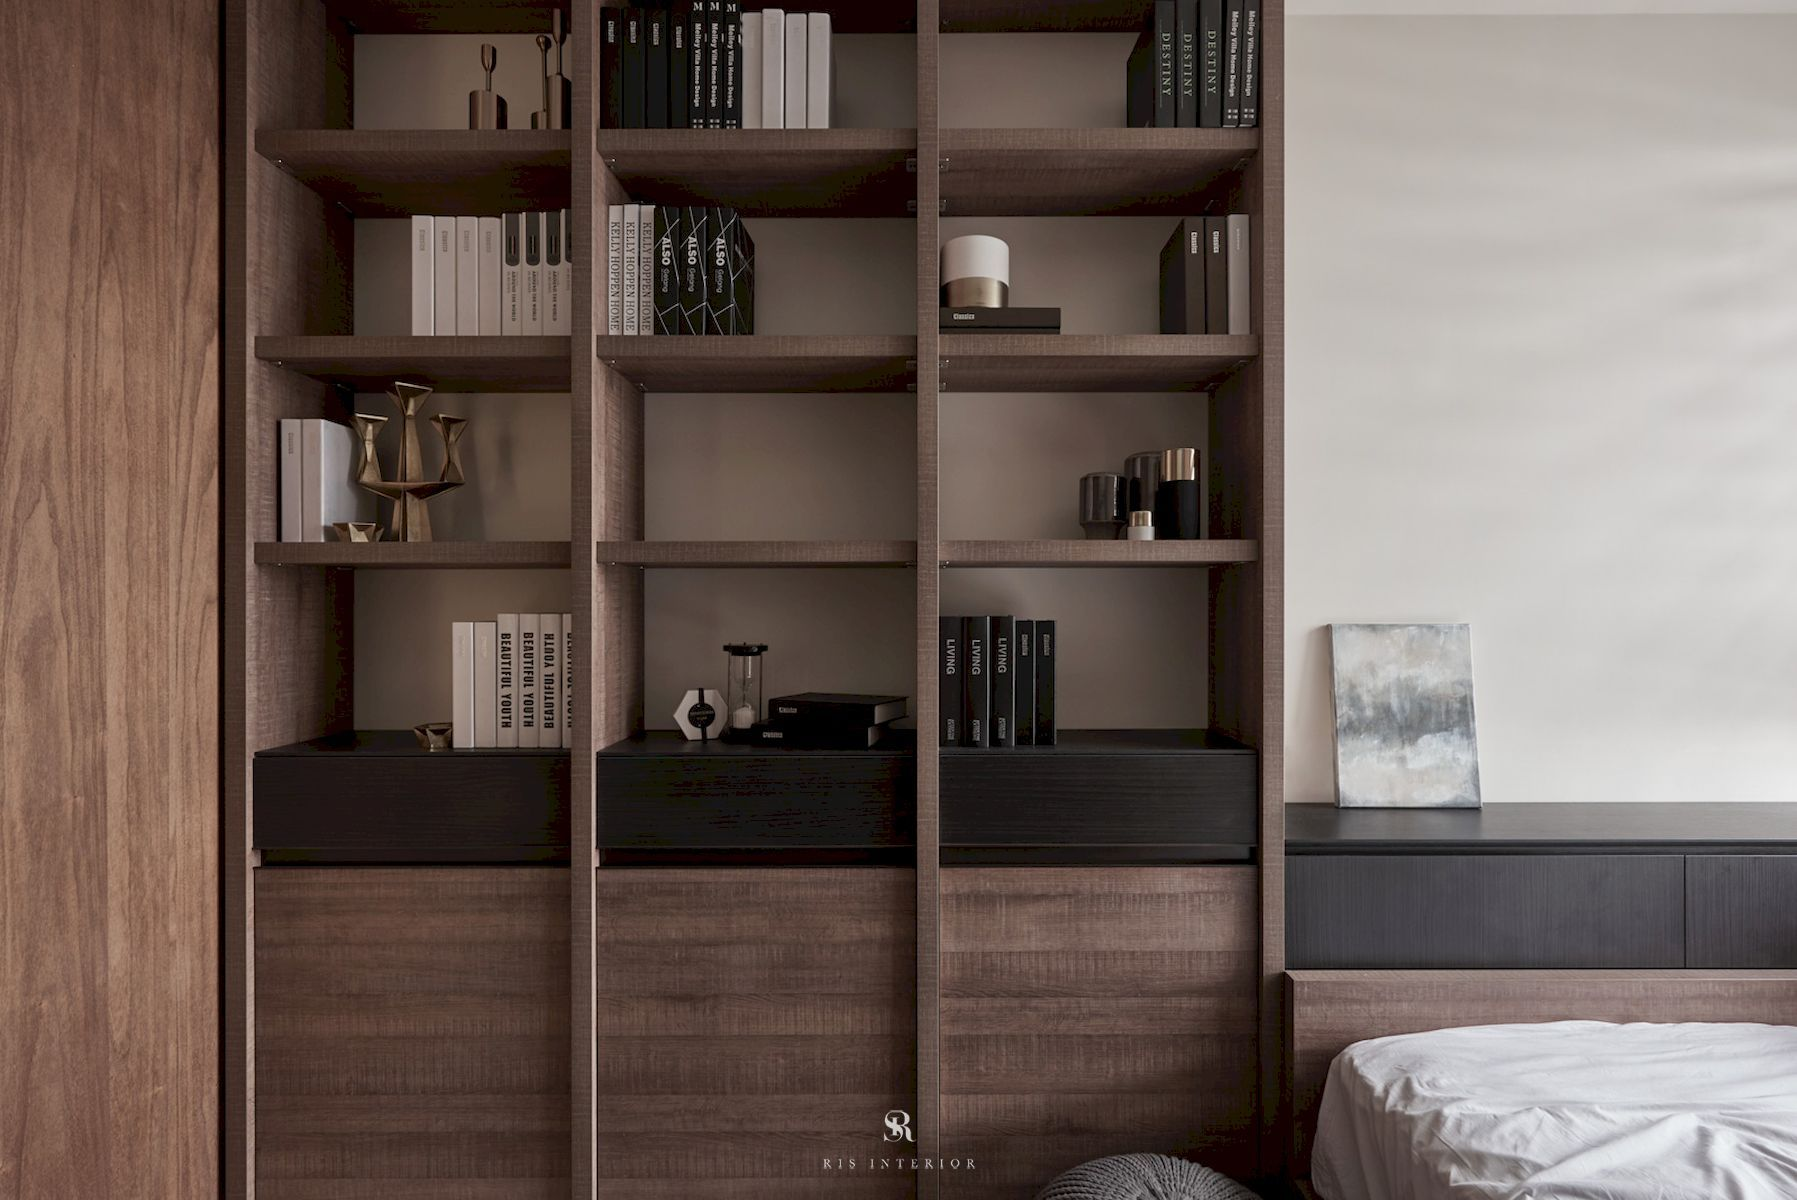 Nook, Reading Room, Home Library, Home Office Ideas And Inspiration Styles:  Asian, Minimalist Colors: Wenge Wood Features: Shelving From Apartment  Project: ...